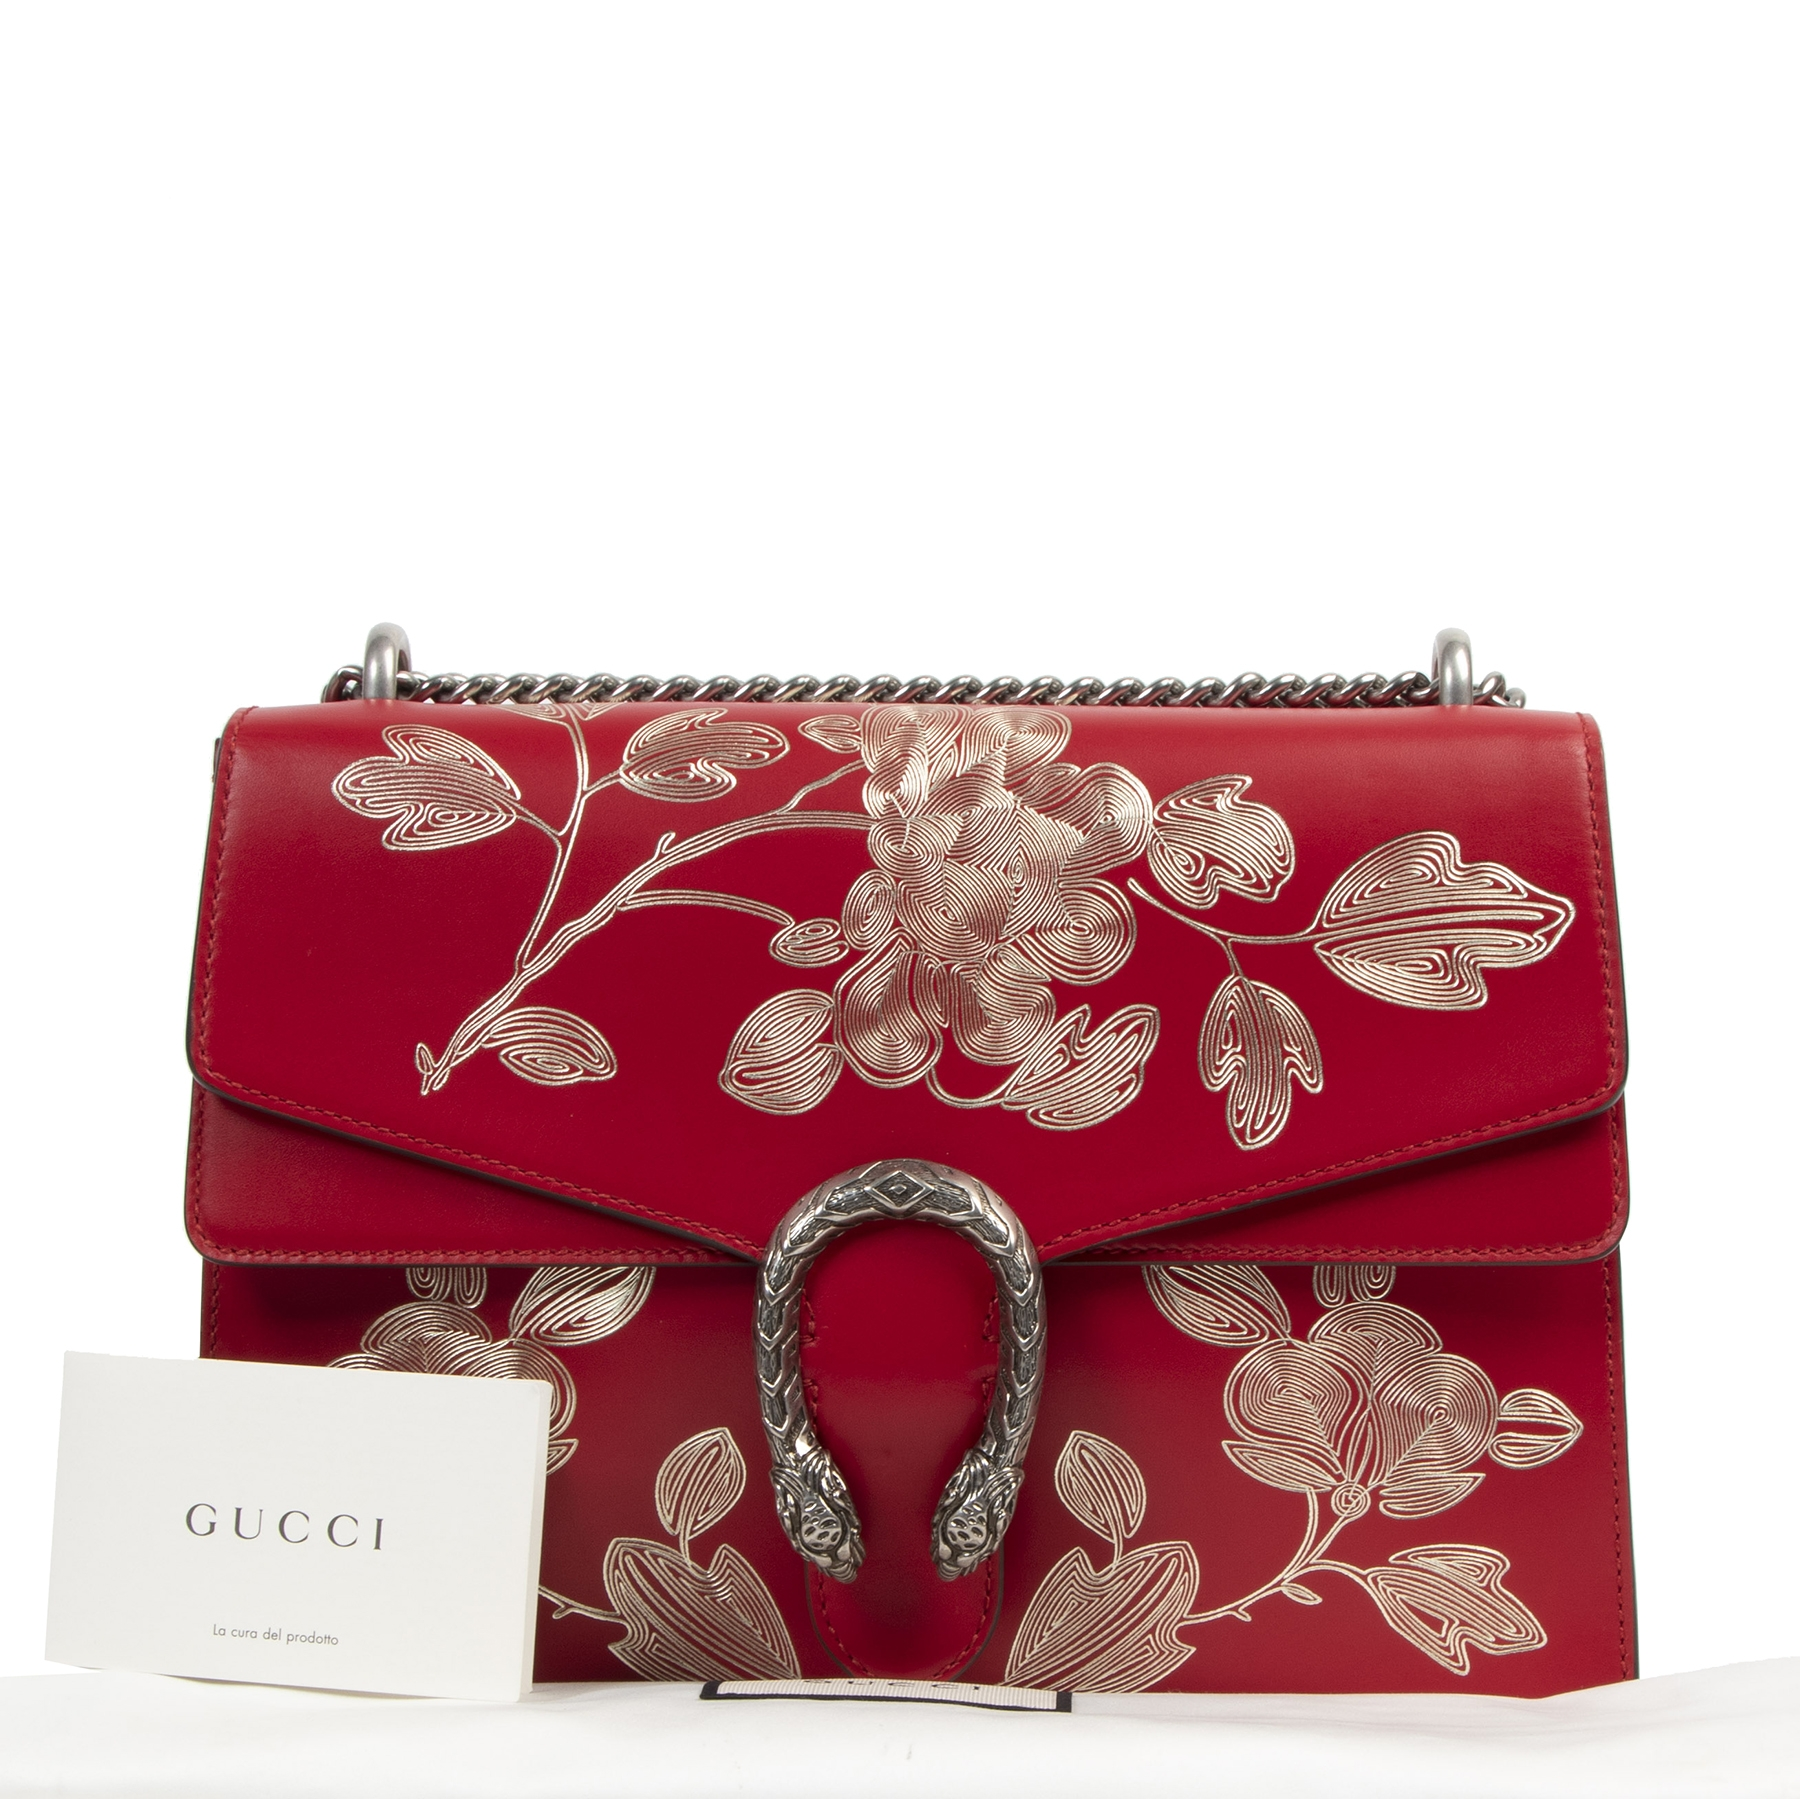 Authentic second-hand vintage Gucci Chinese New Year Hibiscus Red Dionysus Special Edition buy online webshop LabelLOV